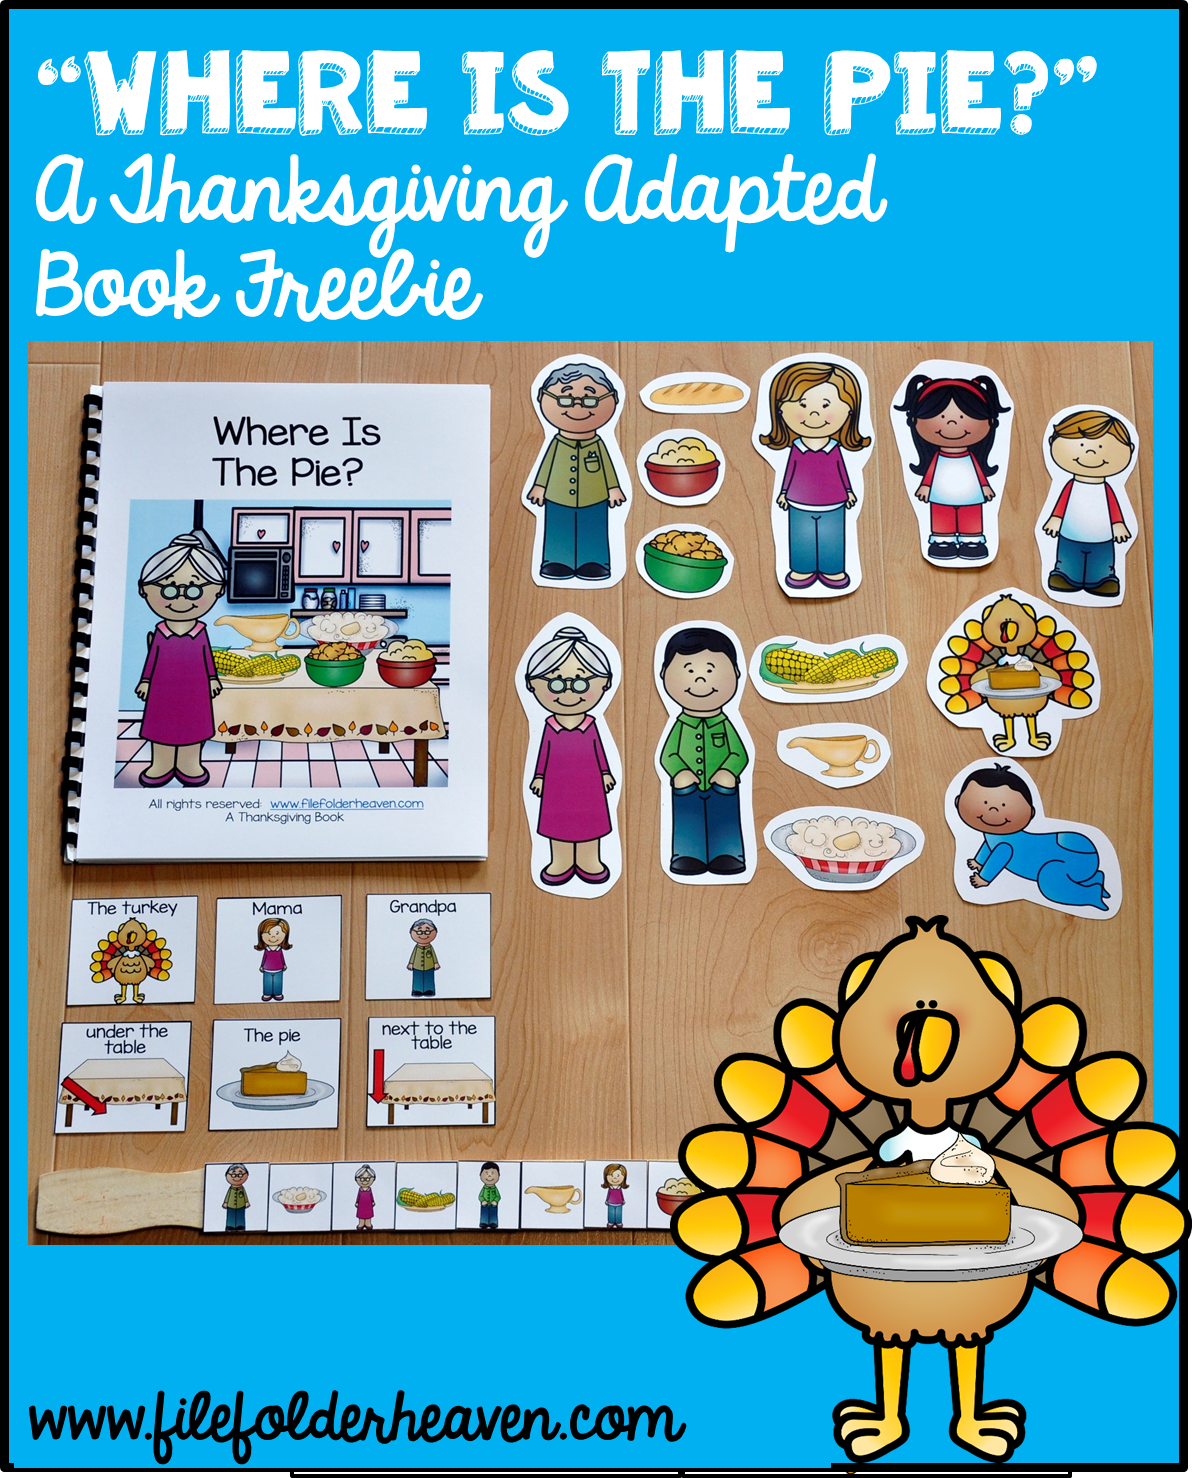 This Thanksgiving Adapted Book Where Is The Pie Is